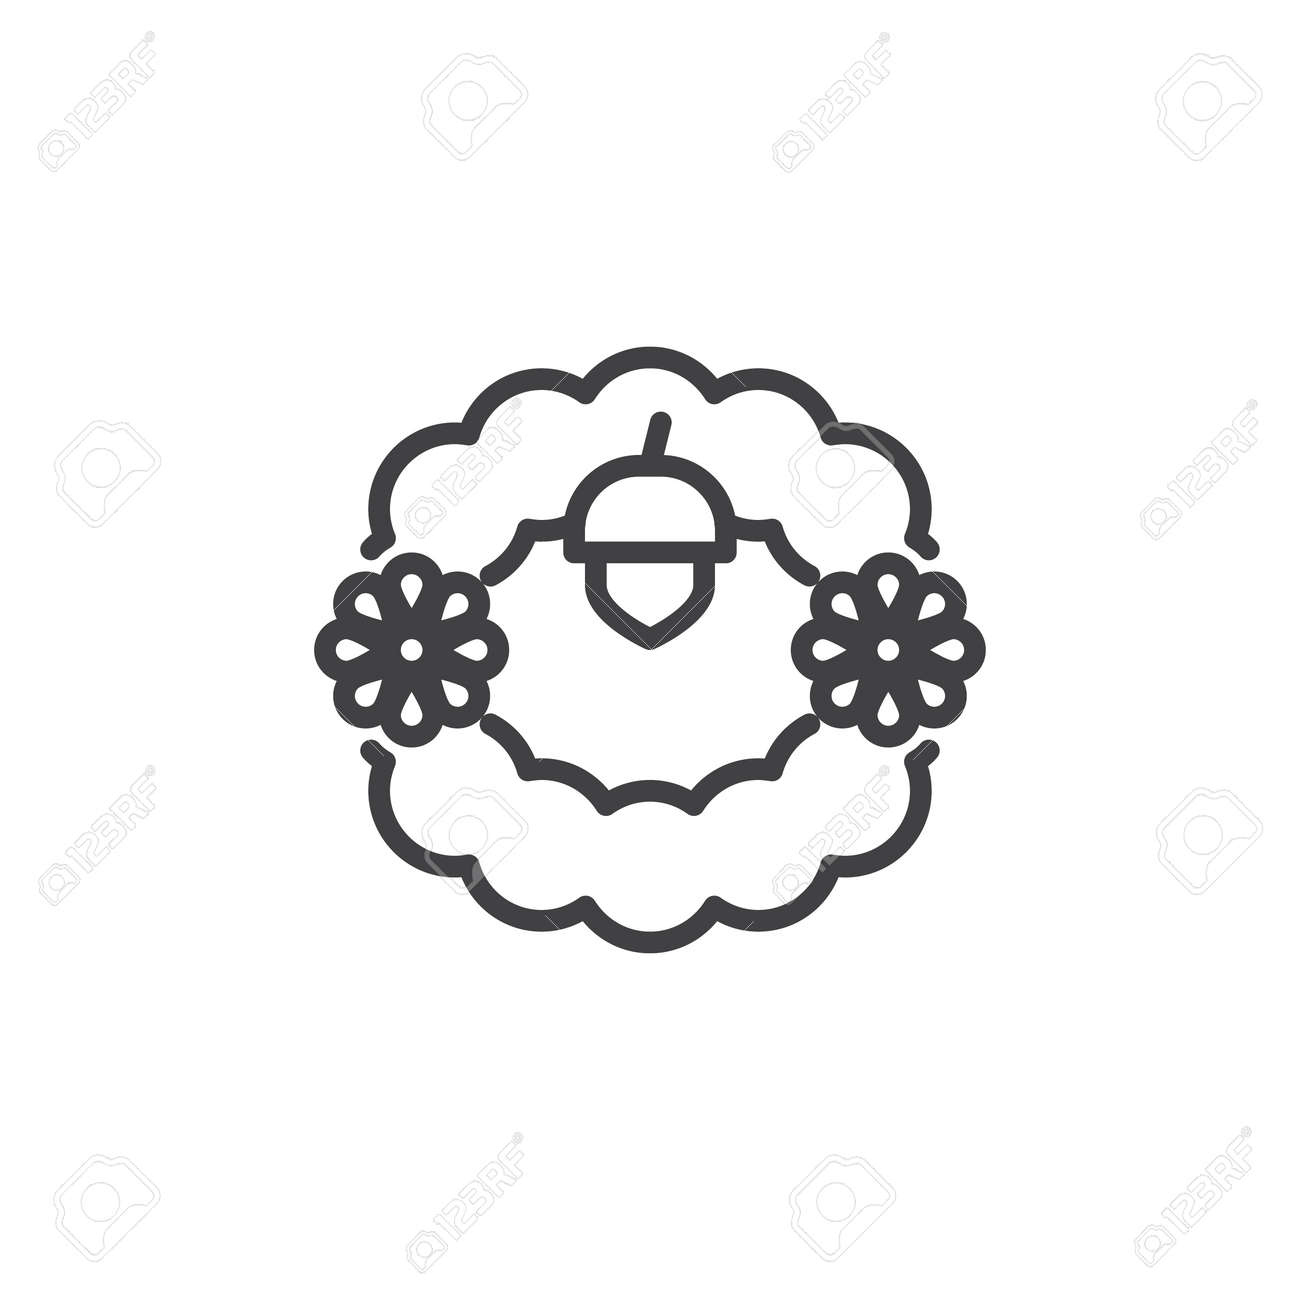 Christmas Wreath Outline Icon Linear Style Sign For Mobile Concept